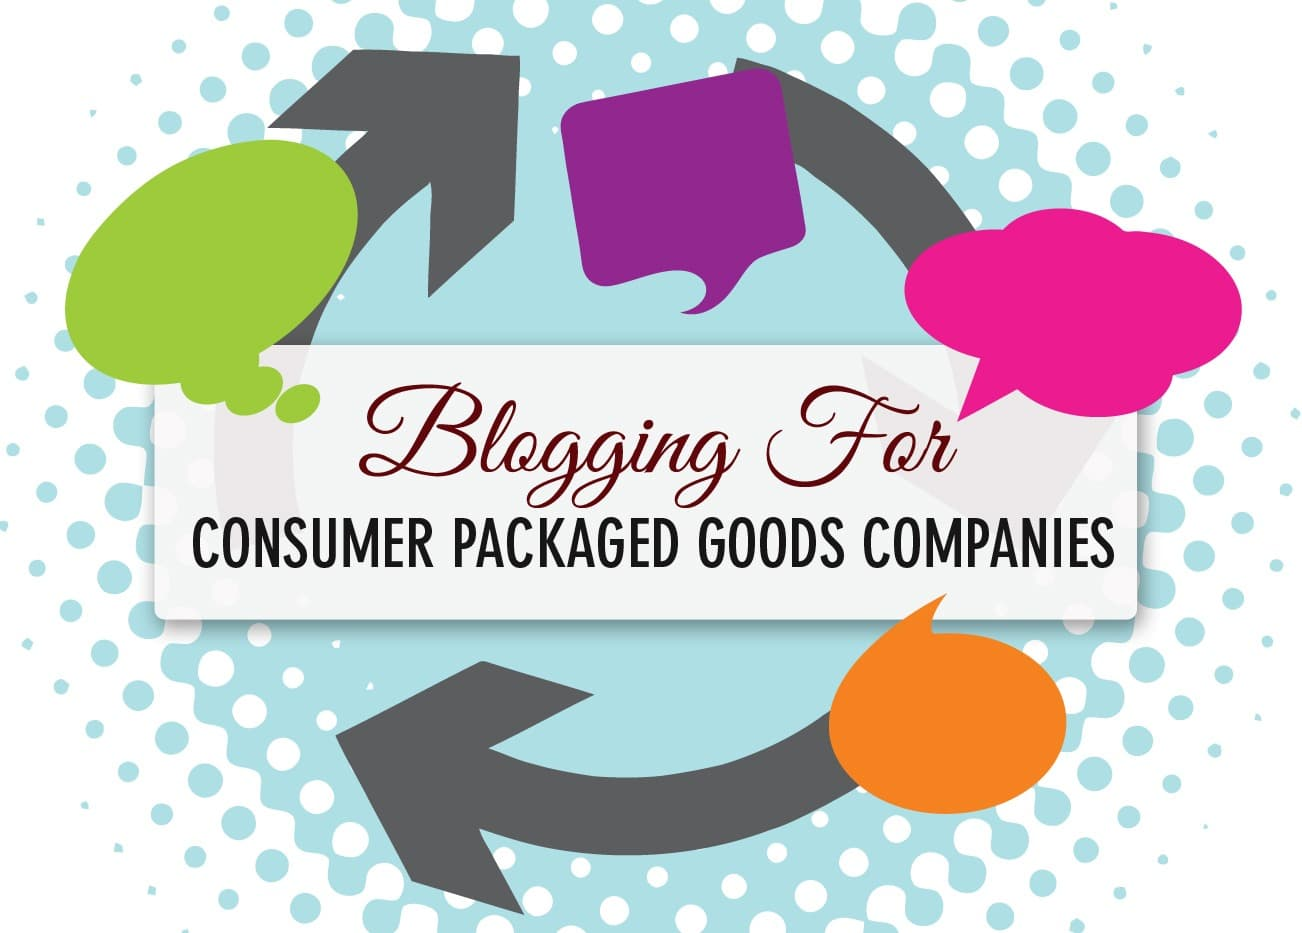 Blogging for Consumer Packaged Goods